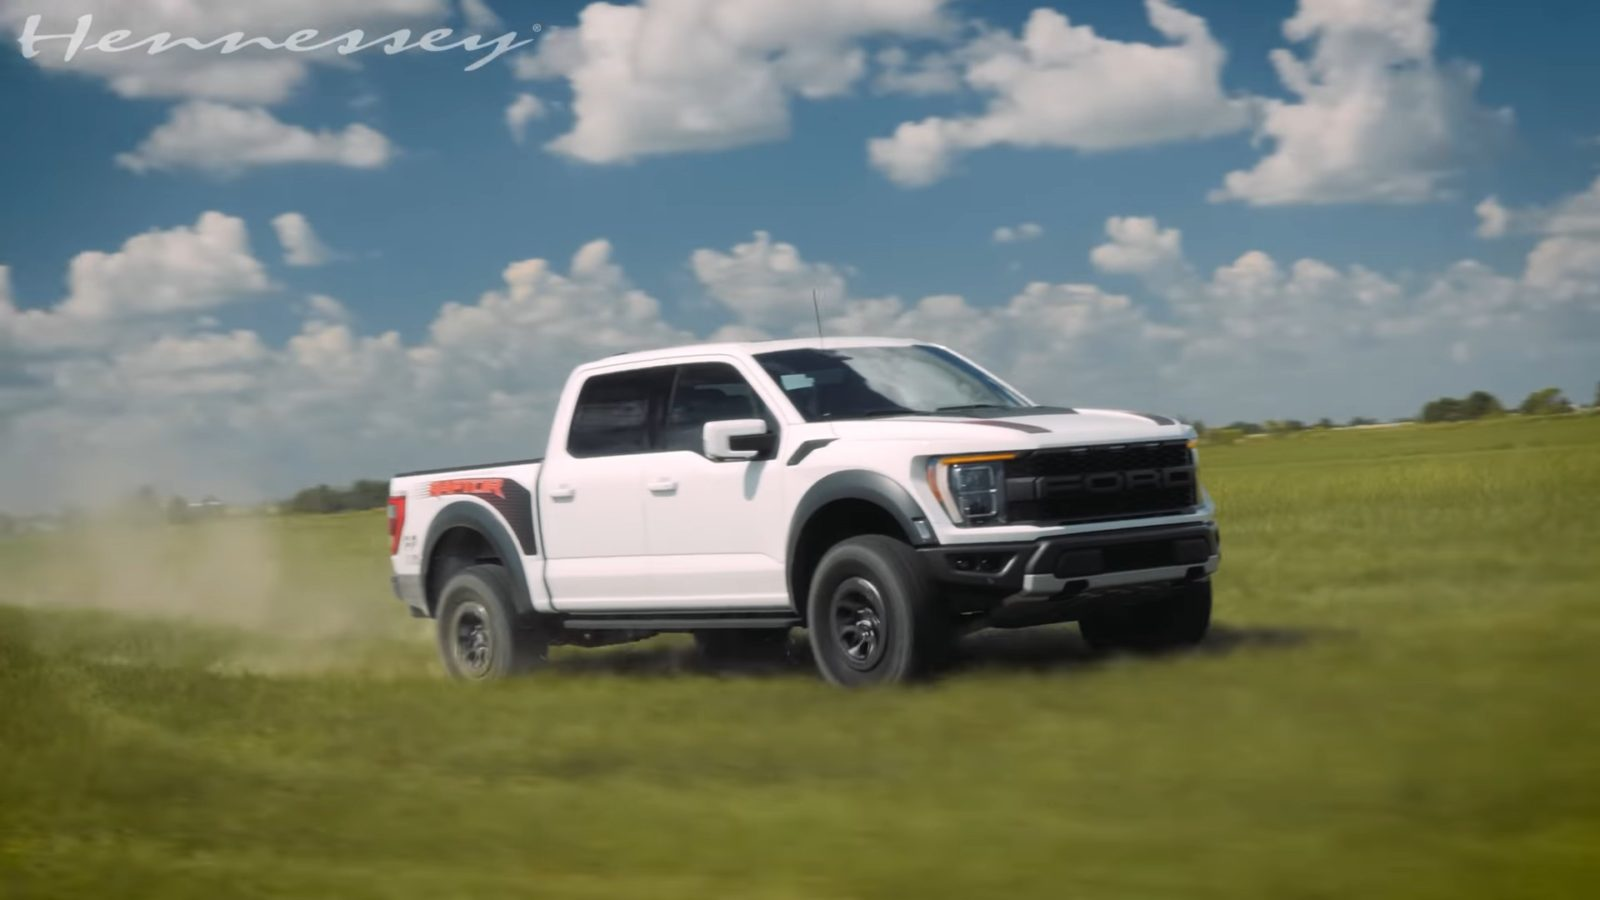 2022-ford-f-150-raptor-lands-at-hennessey-for-early-impressions-and-dyno-testing